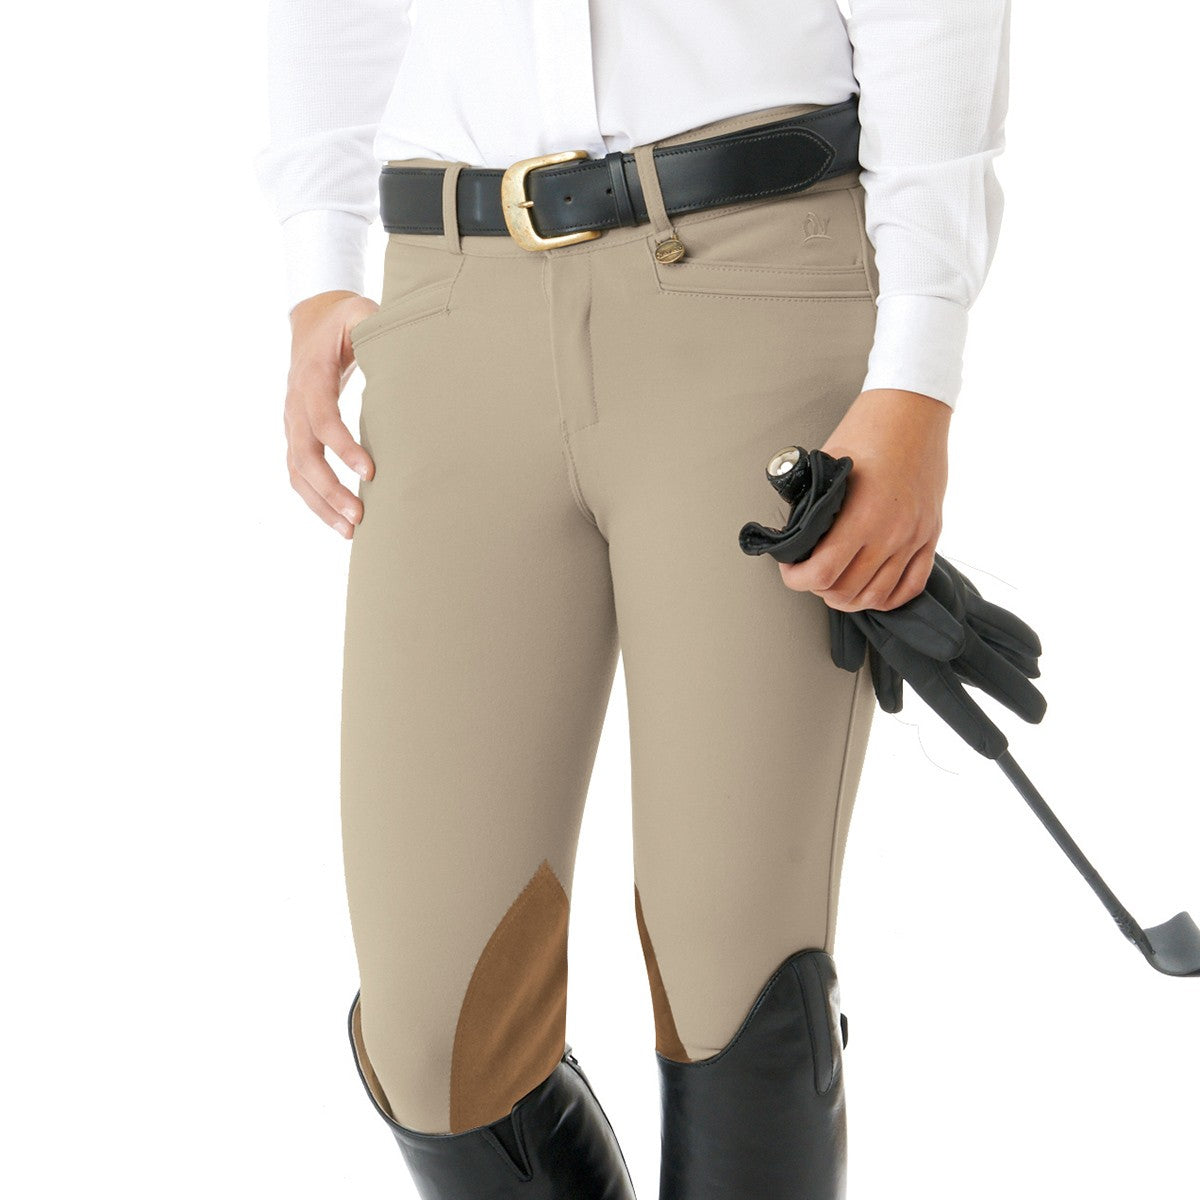 Ovation Kids' Celebrity EuroWeave DX Euro Seat Front Zip Knee Patch Breeches